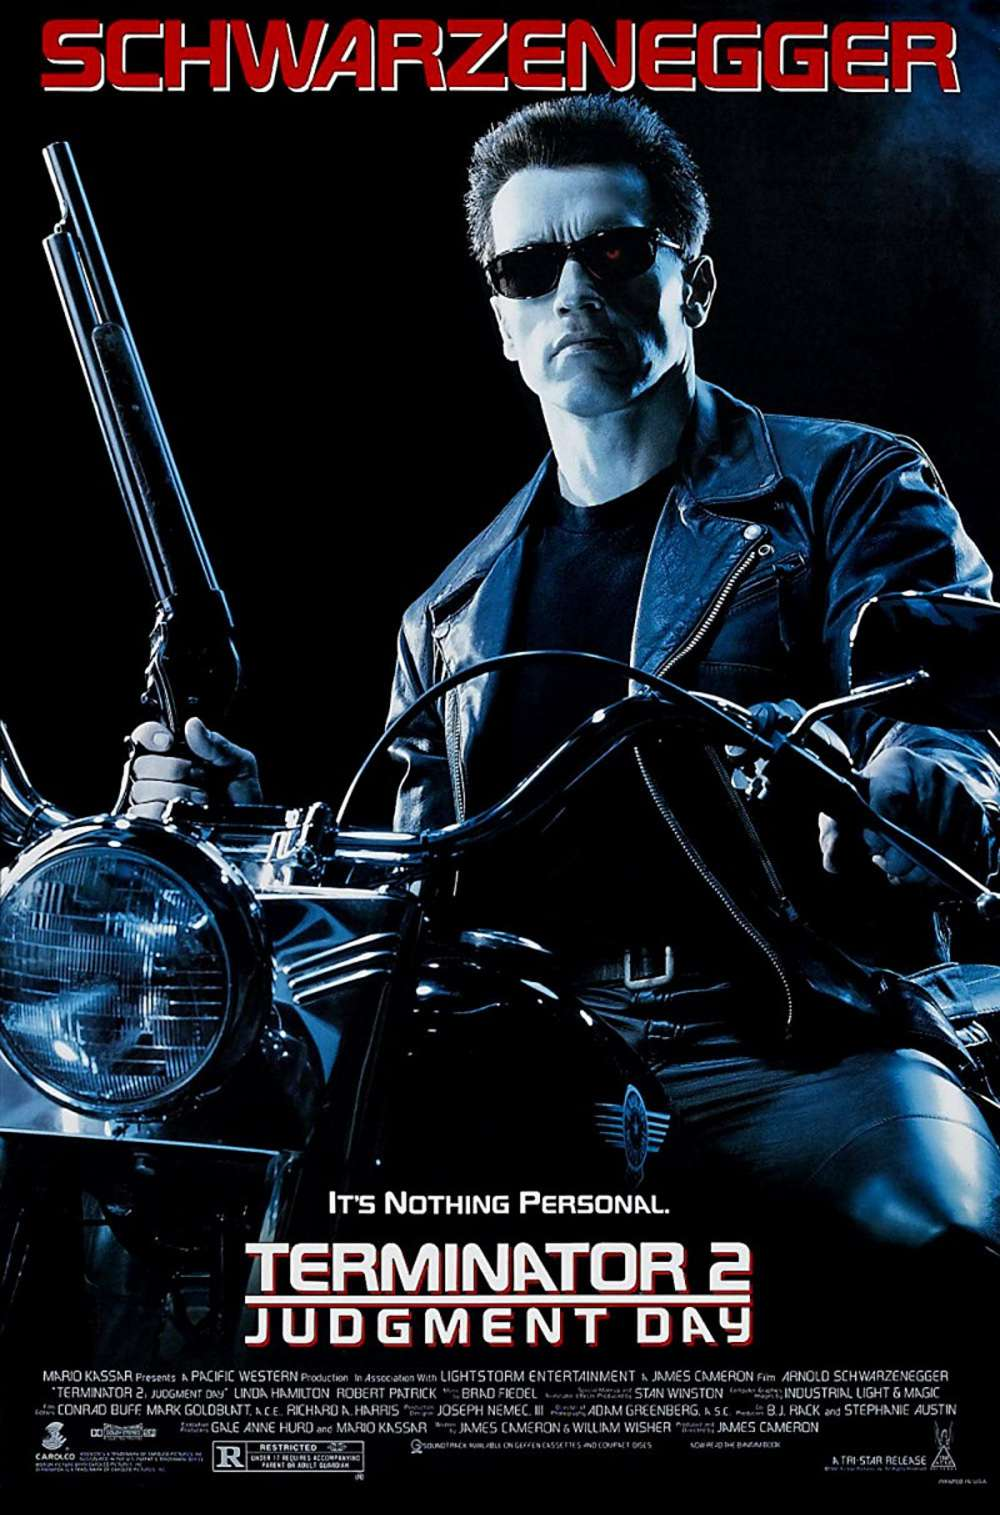 Poster for Terminator 2: Judgment Day (1991)